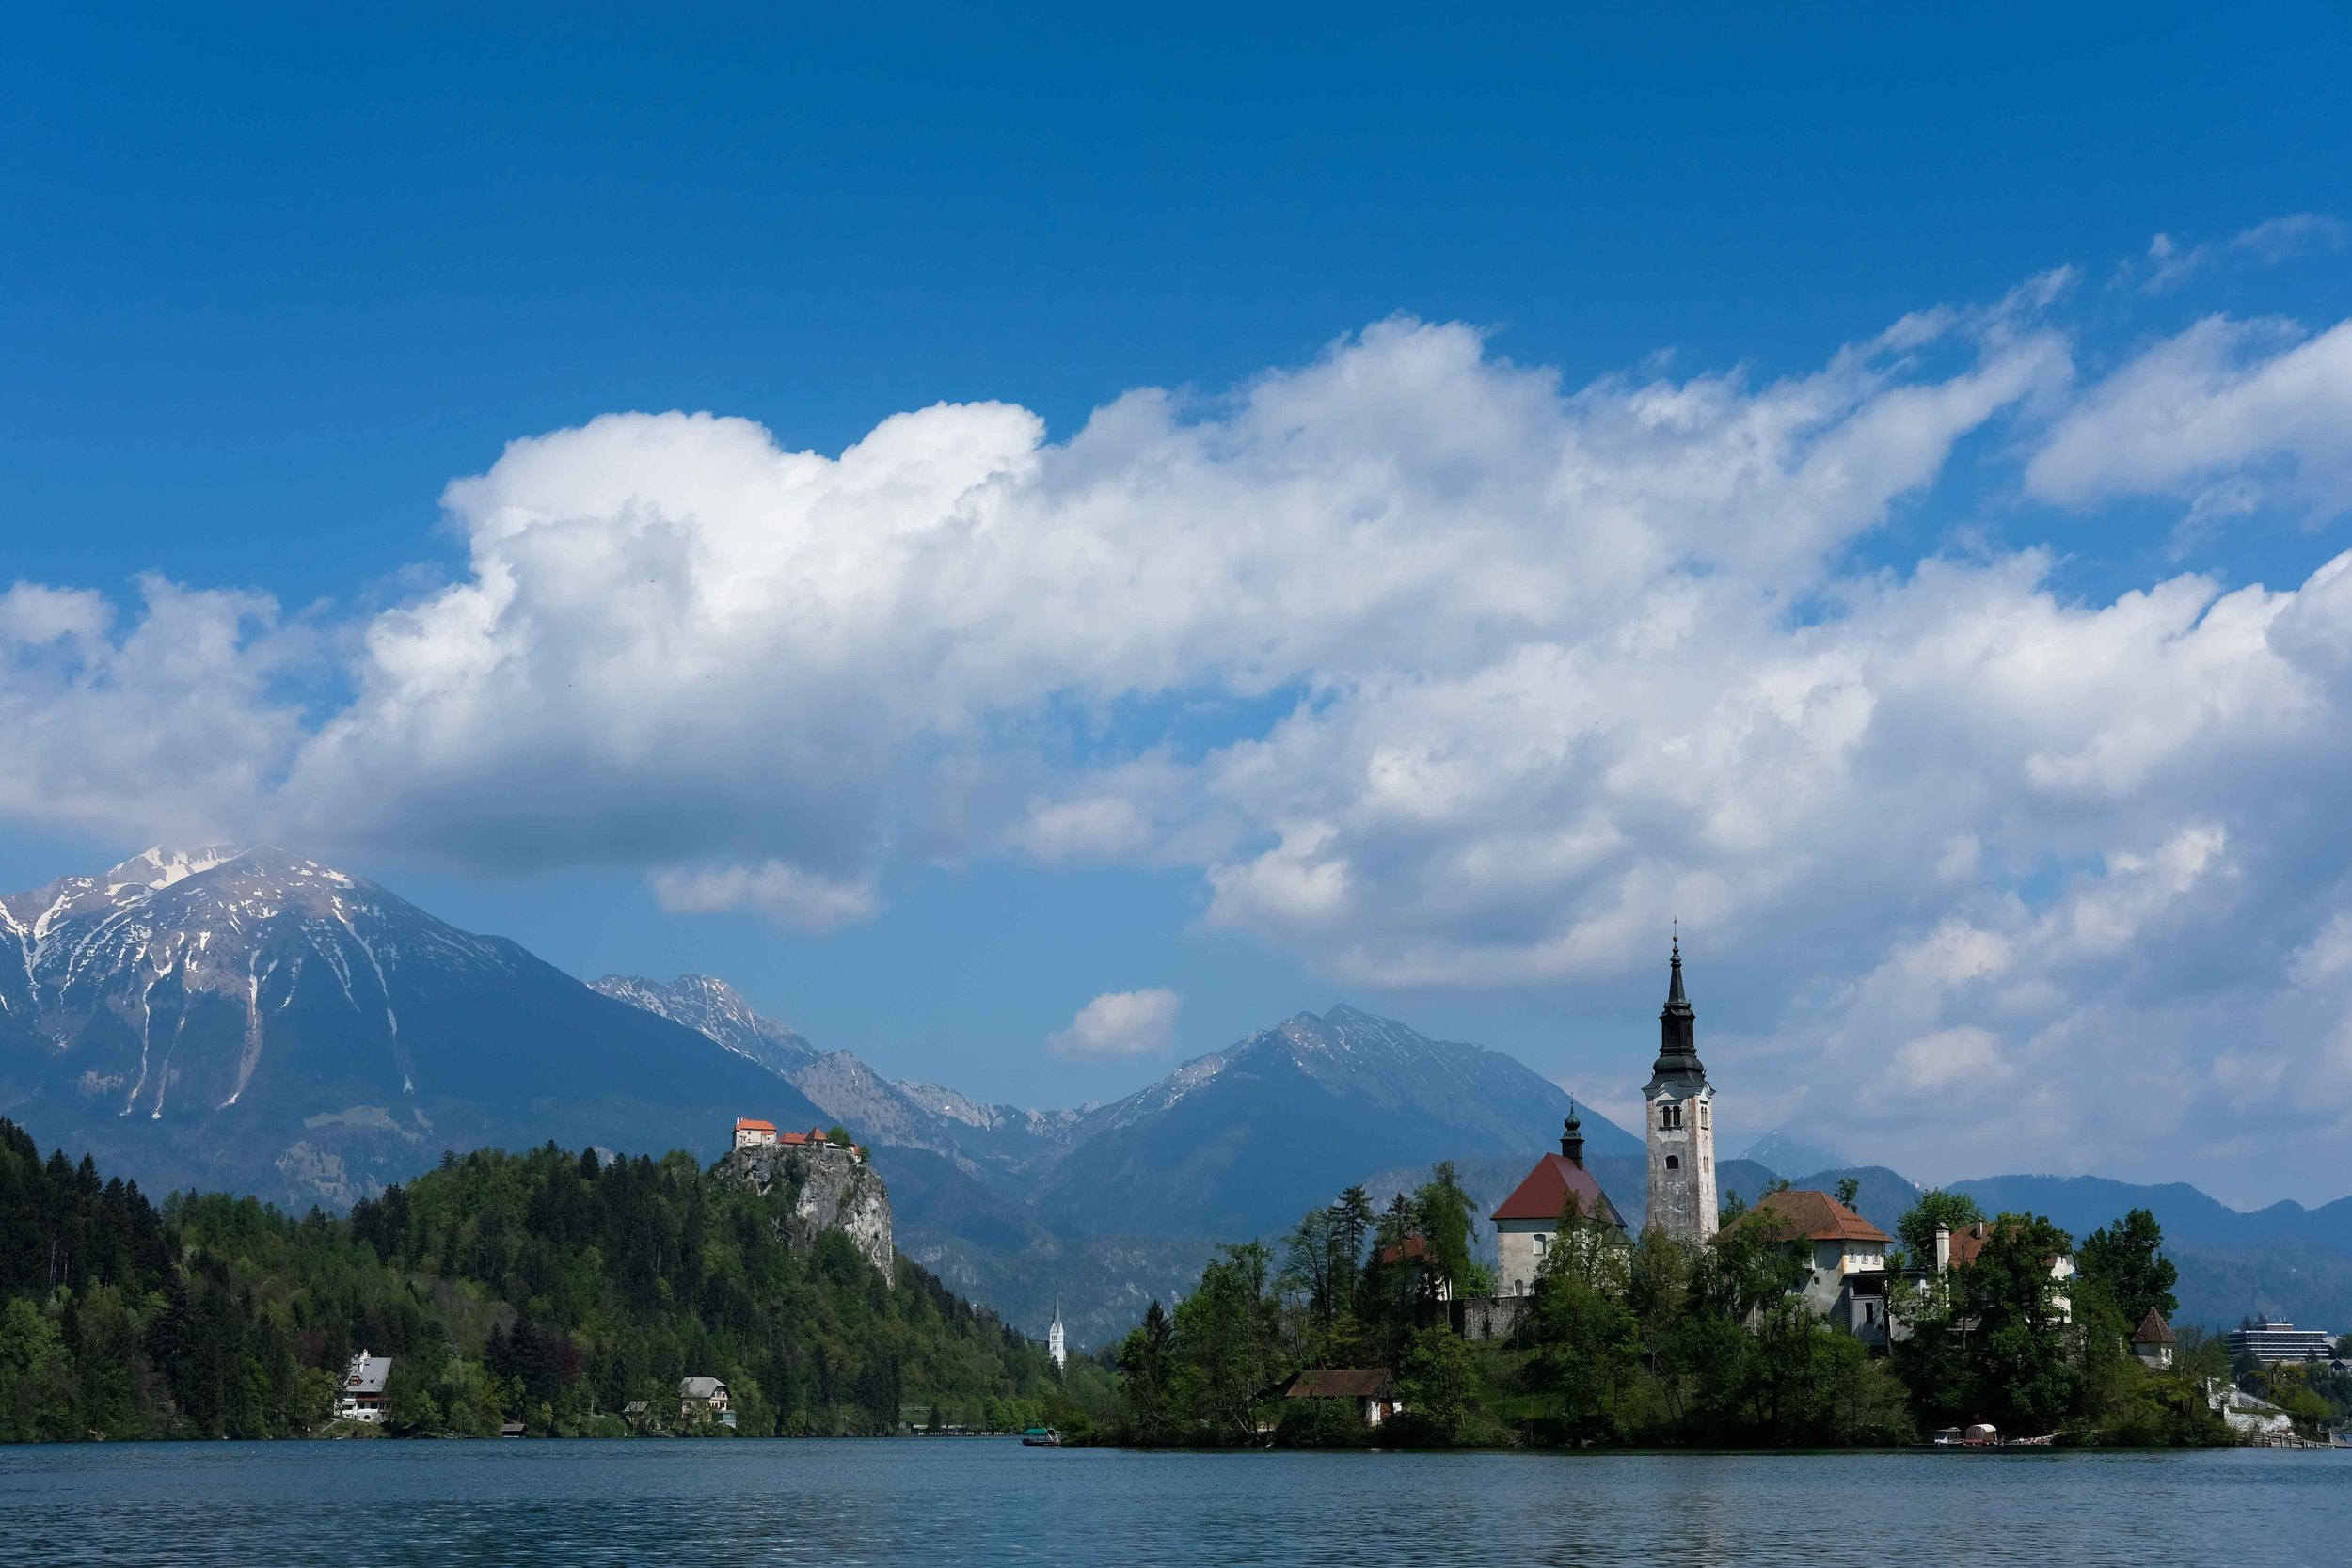 Lake Bled, Slovenia with its island Church and clifftop castle.